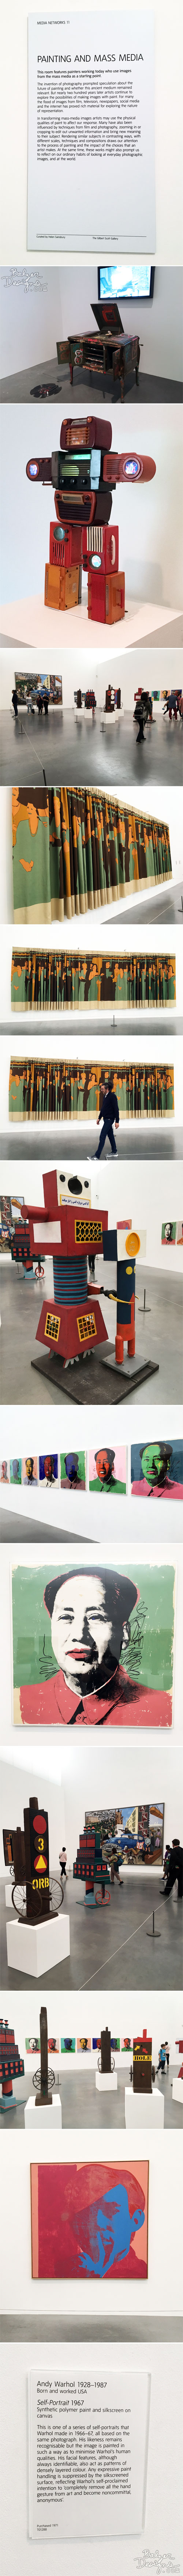 From the Balzer Designs Blog: Tate Modern (Part Three)